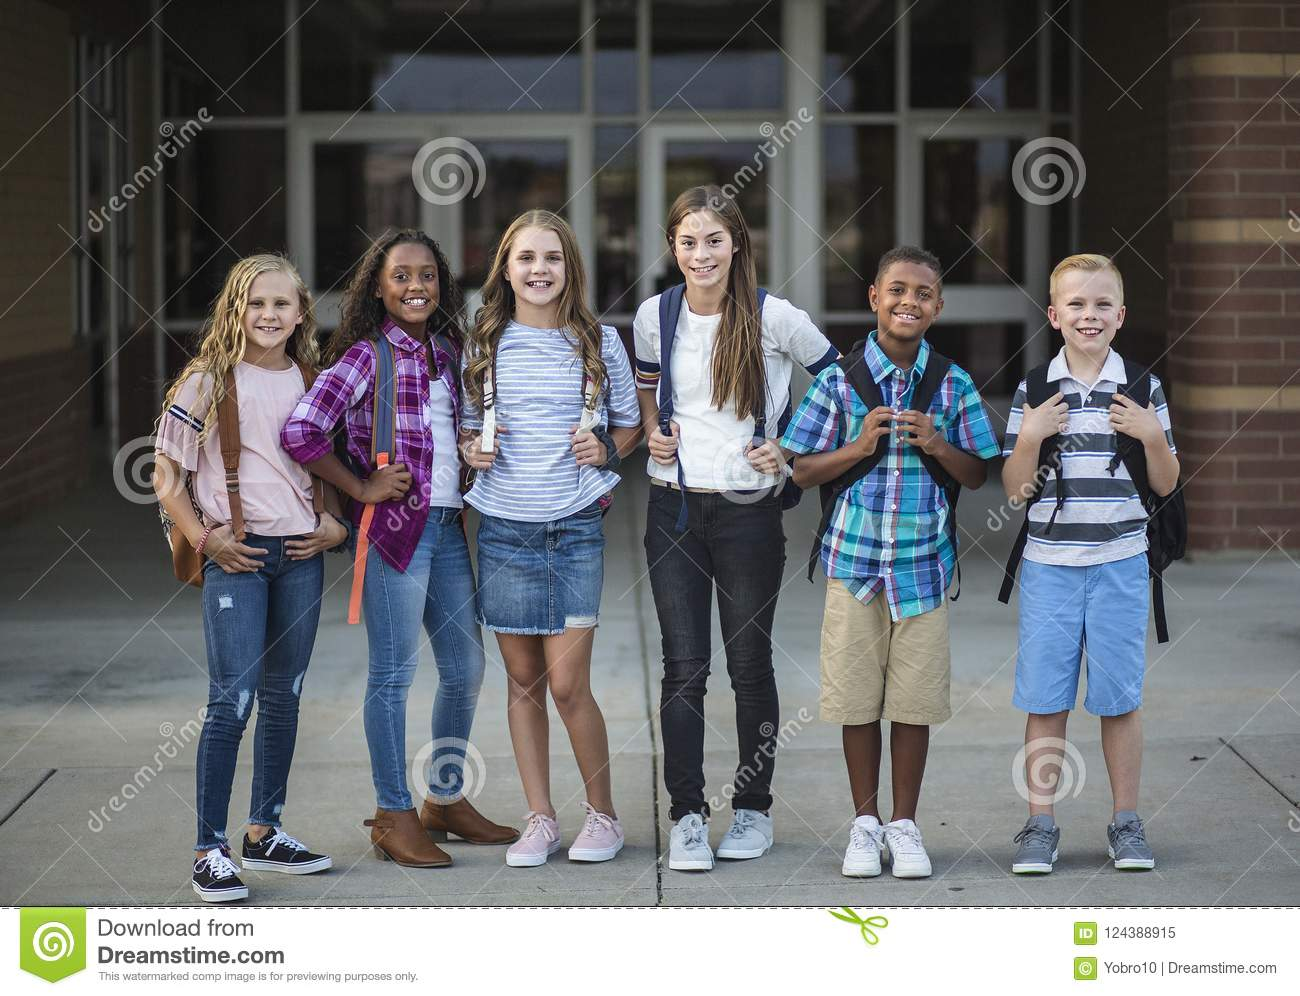 Group portrait of pre-adolescent school kids smiling in front of the school building